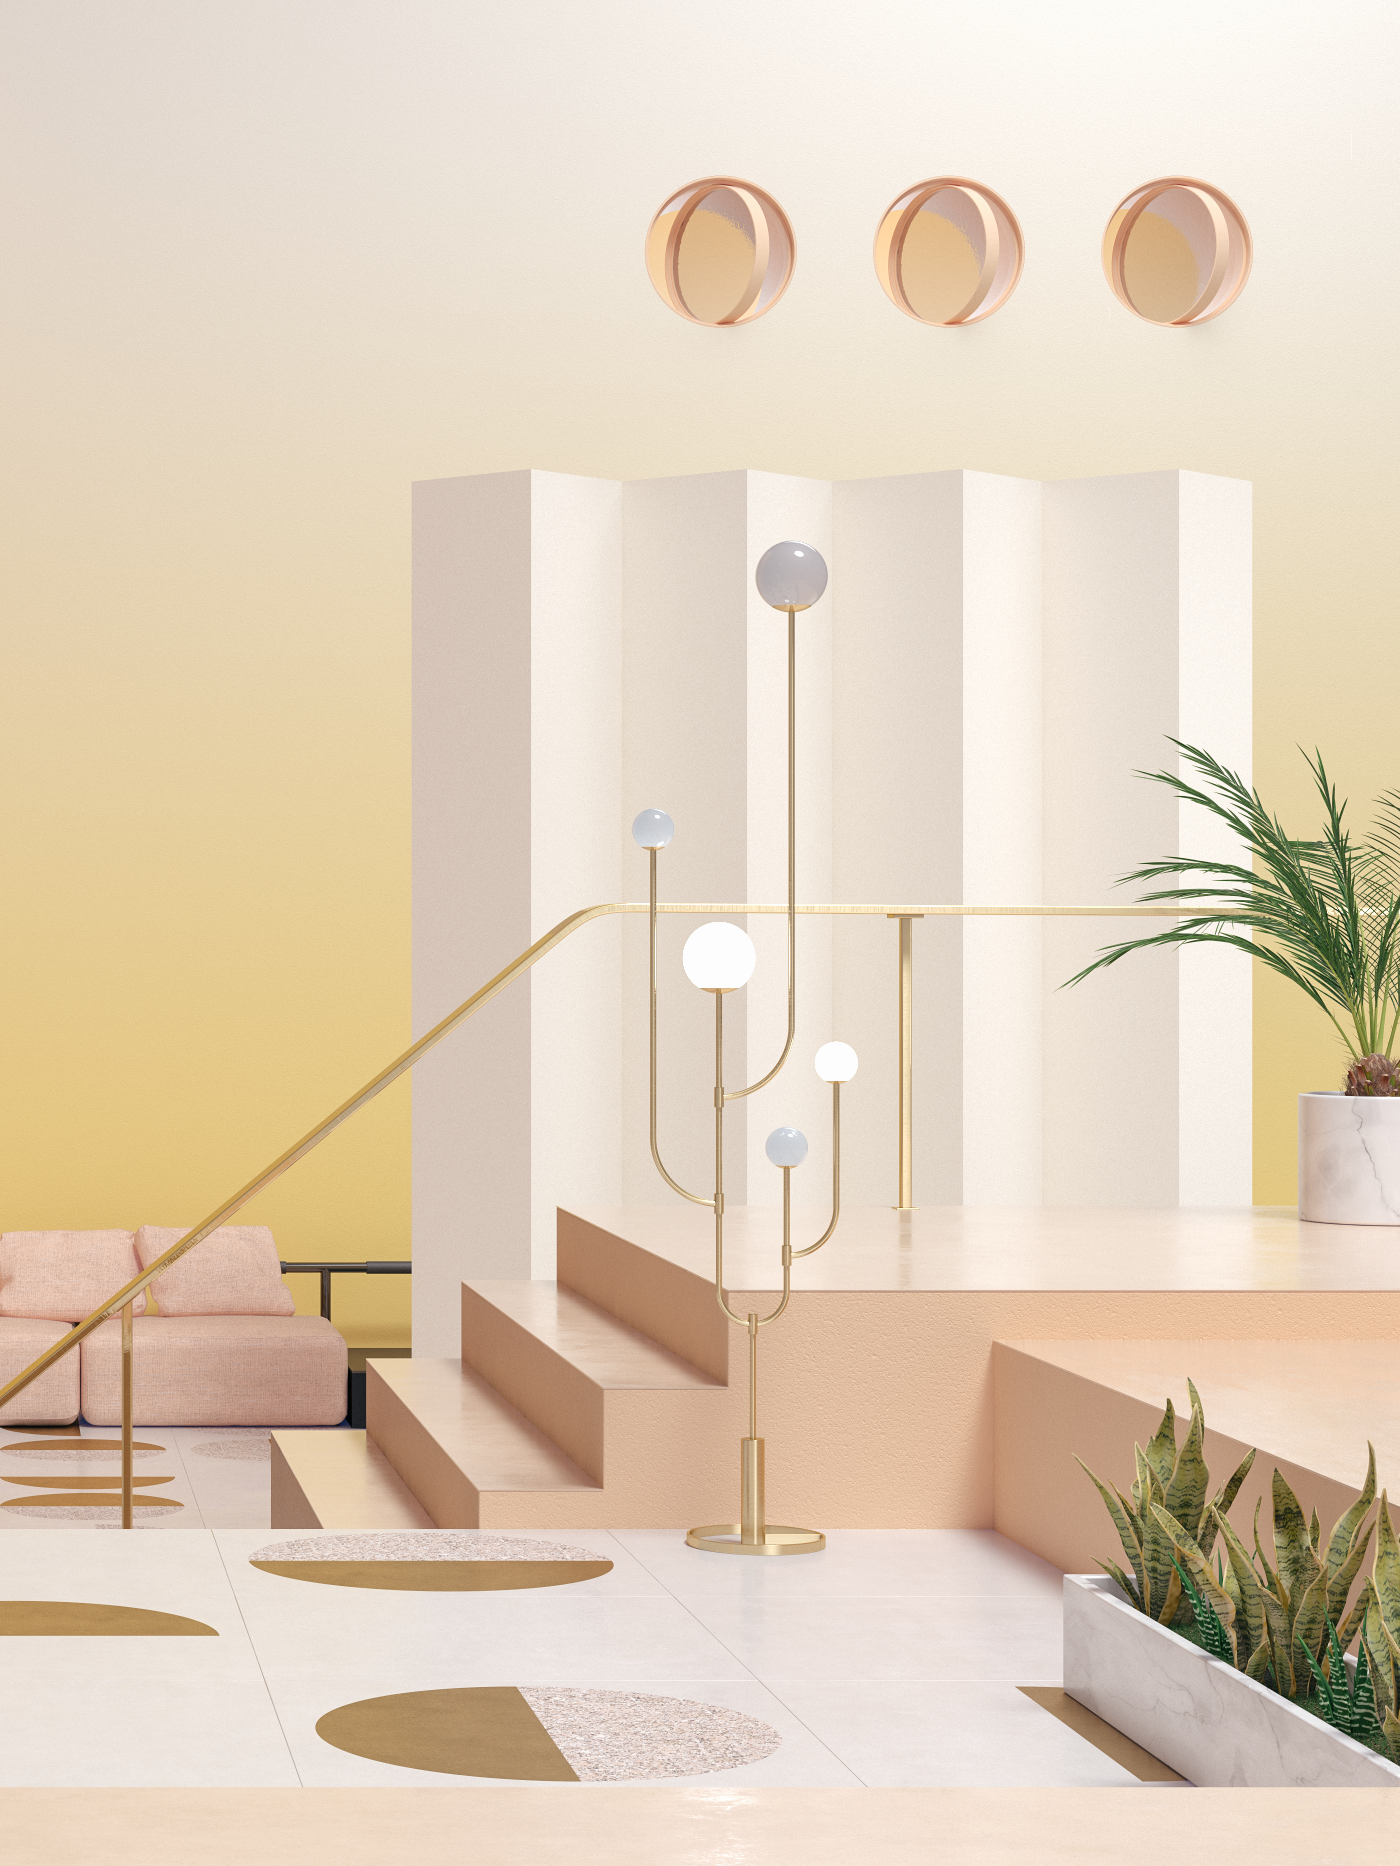 Seasons The Project Where A Modern Floor Lamp Changes Everything 2 modern floor lamp Seasons : The Project Where A Modern Floor Lamp Changes Everything Seasons The Project Where A Modern Floor Lamp Changes Everything 2